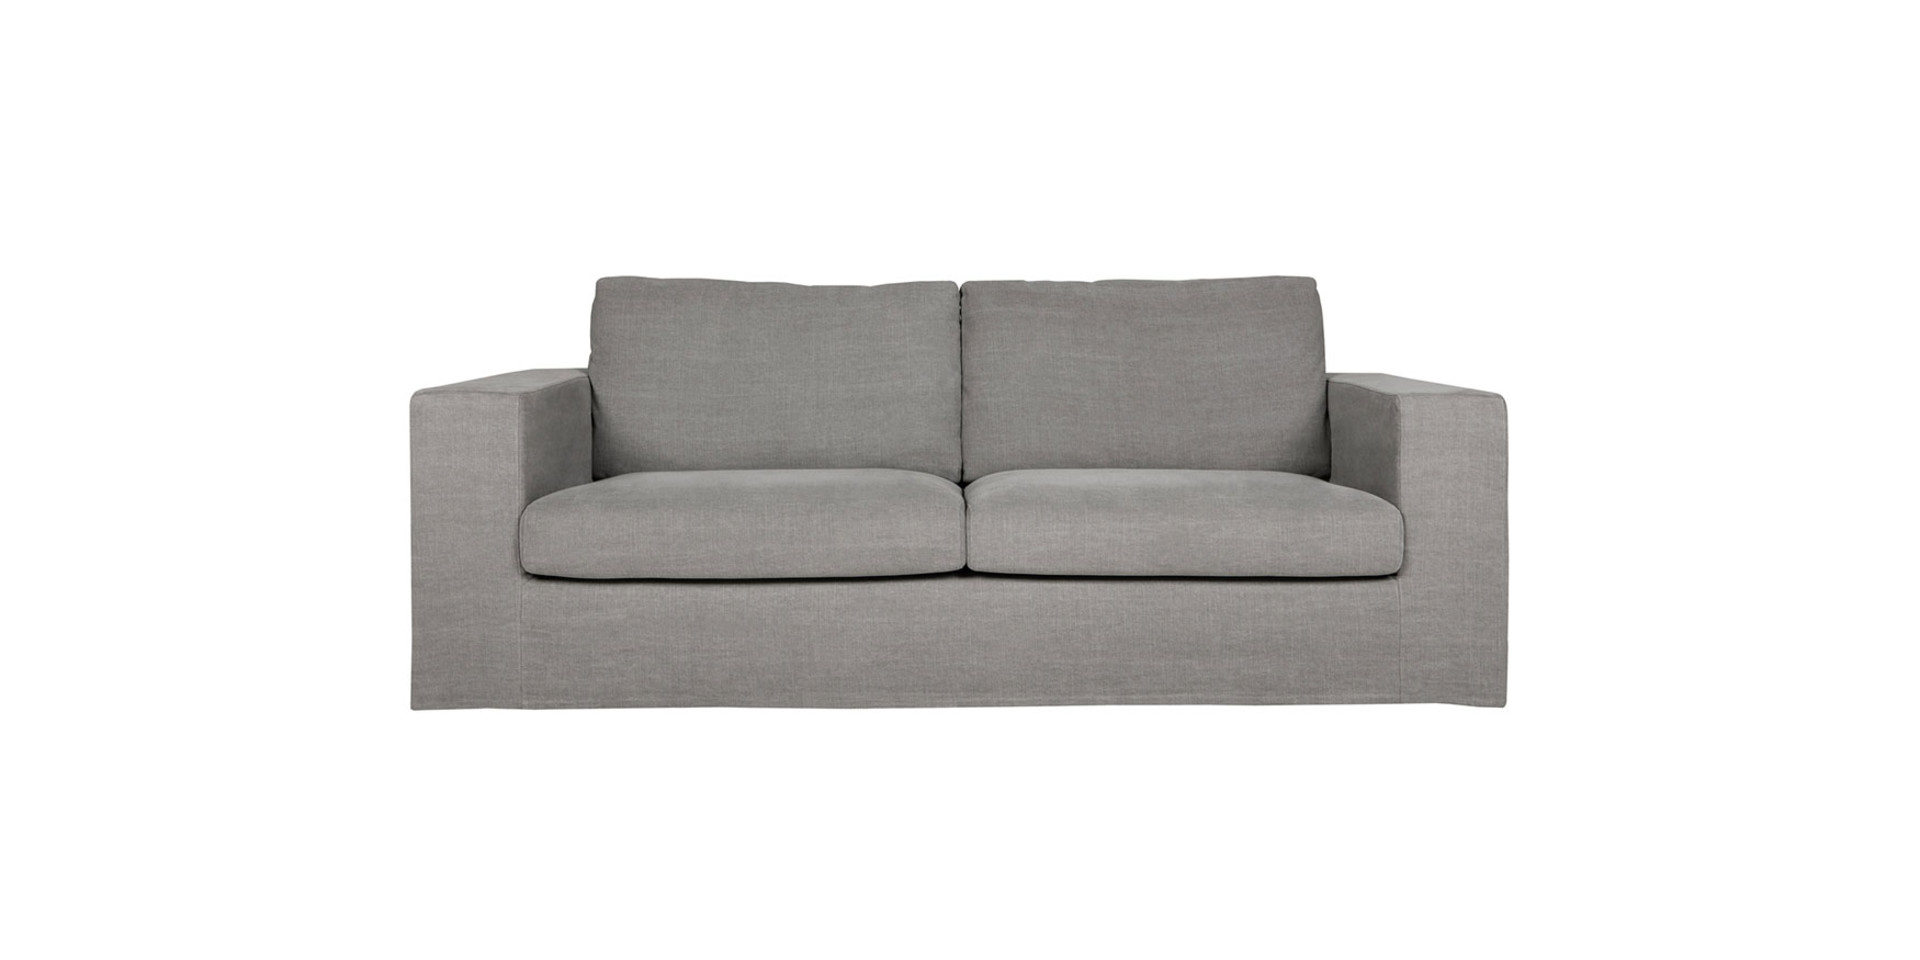 sits-elsie-canape-3seater_kiss3_stone_1